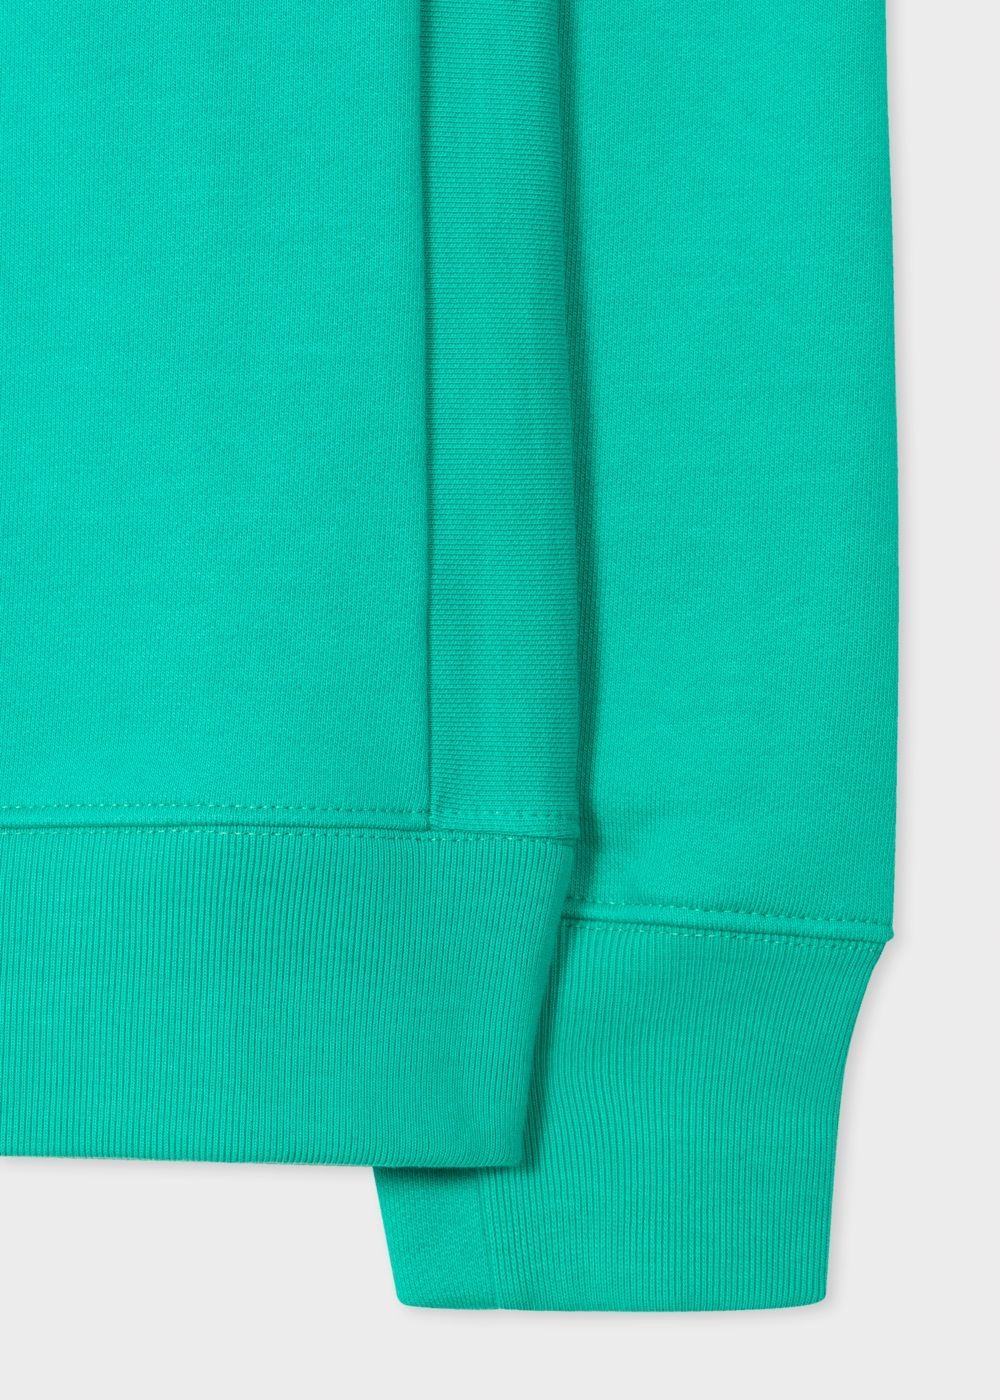 PS By Paul Smith Turquoise Organic Cotton Sweatshirt